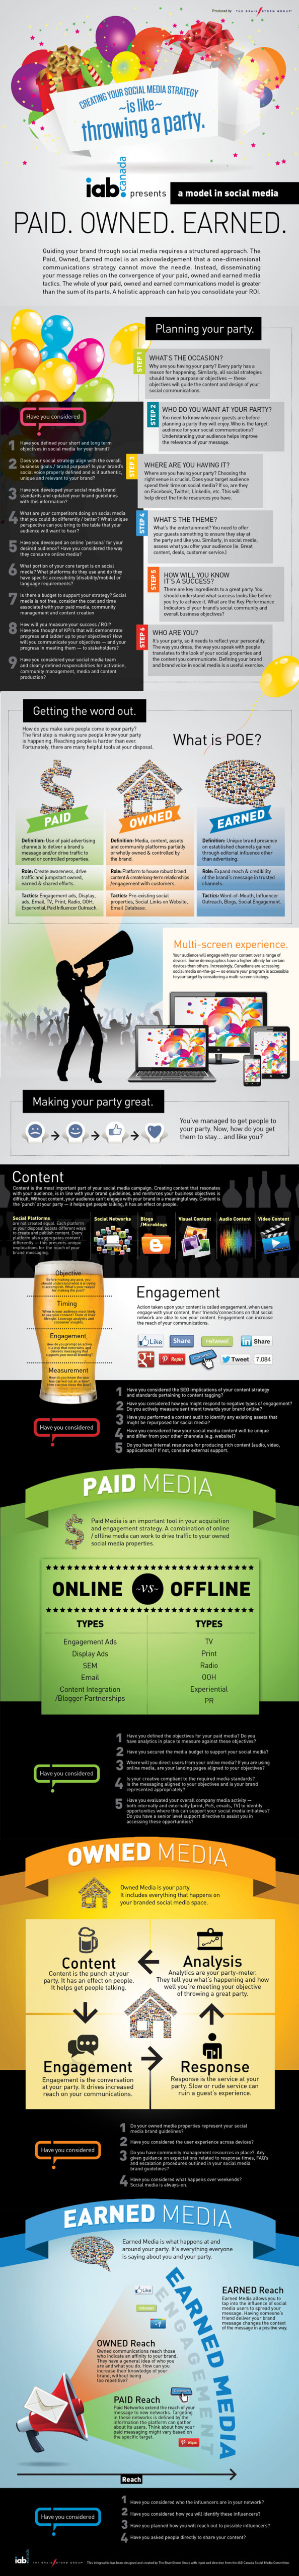 Paid. Owned. Earned. - A Model in Social Media Infographic